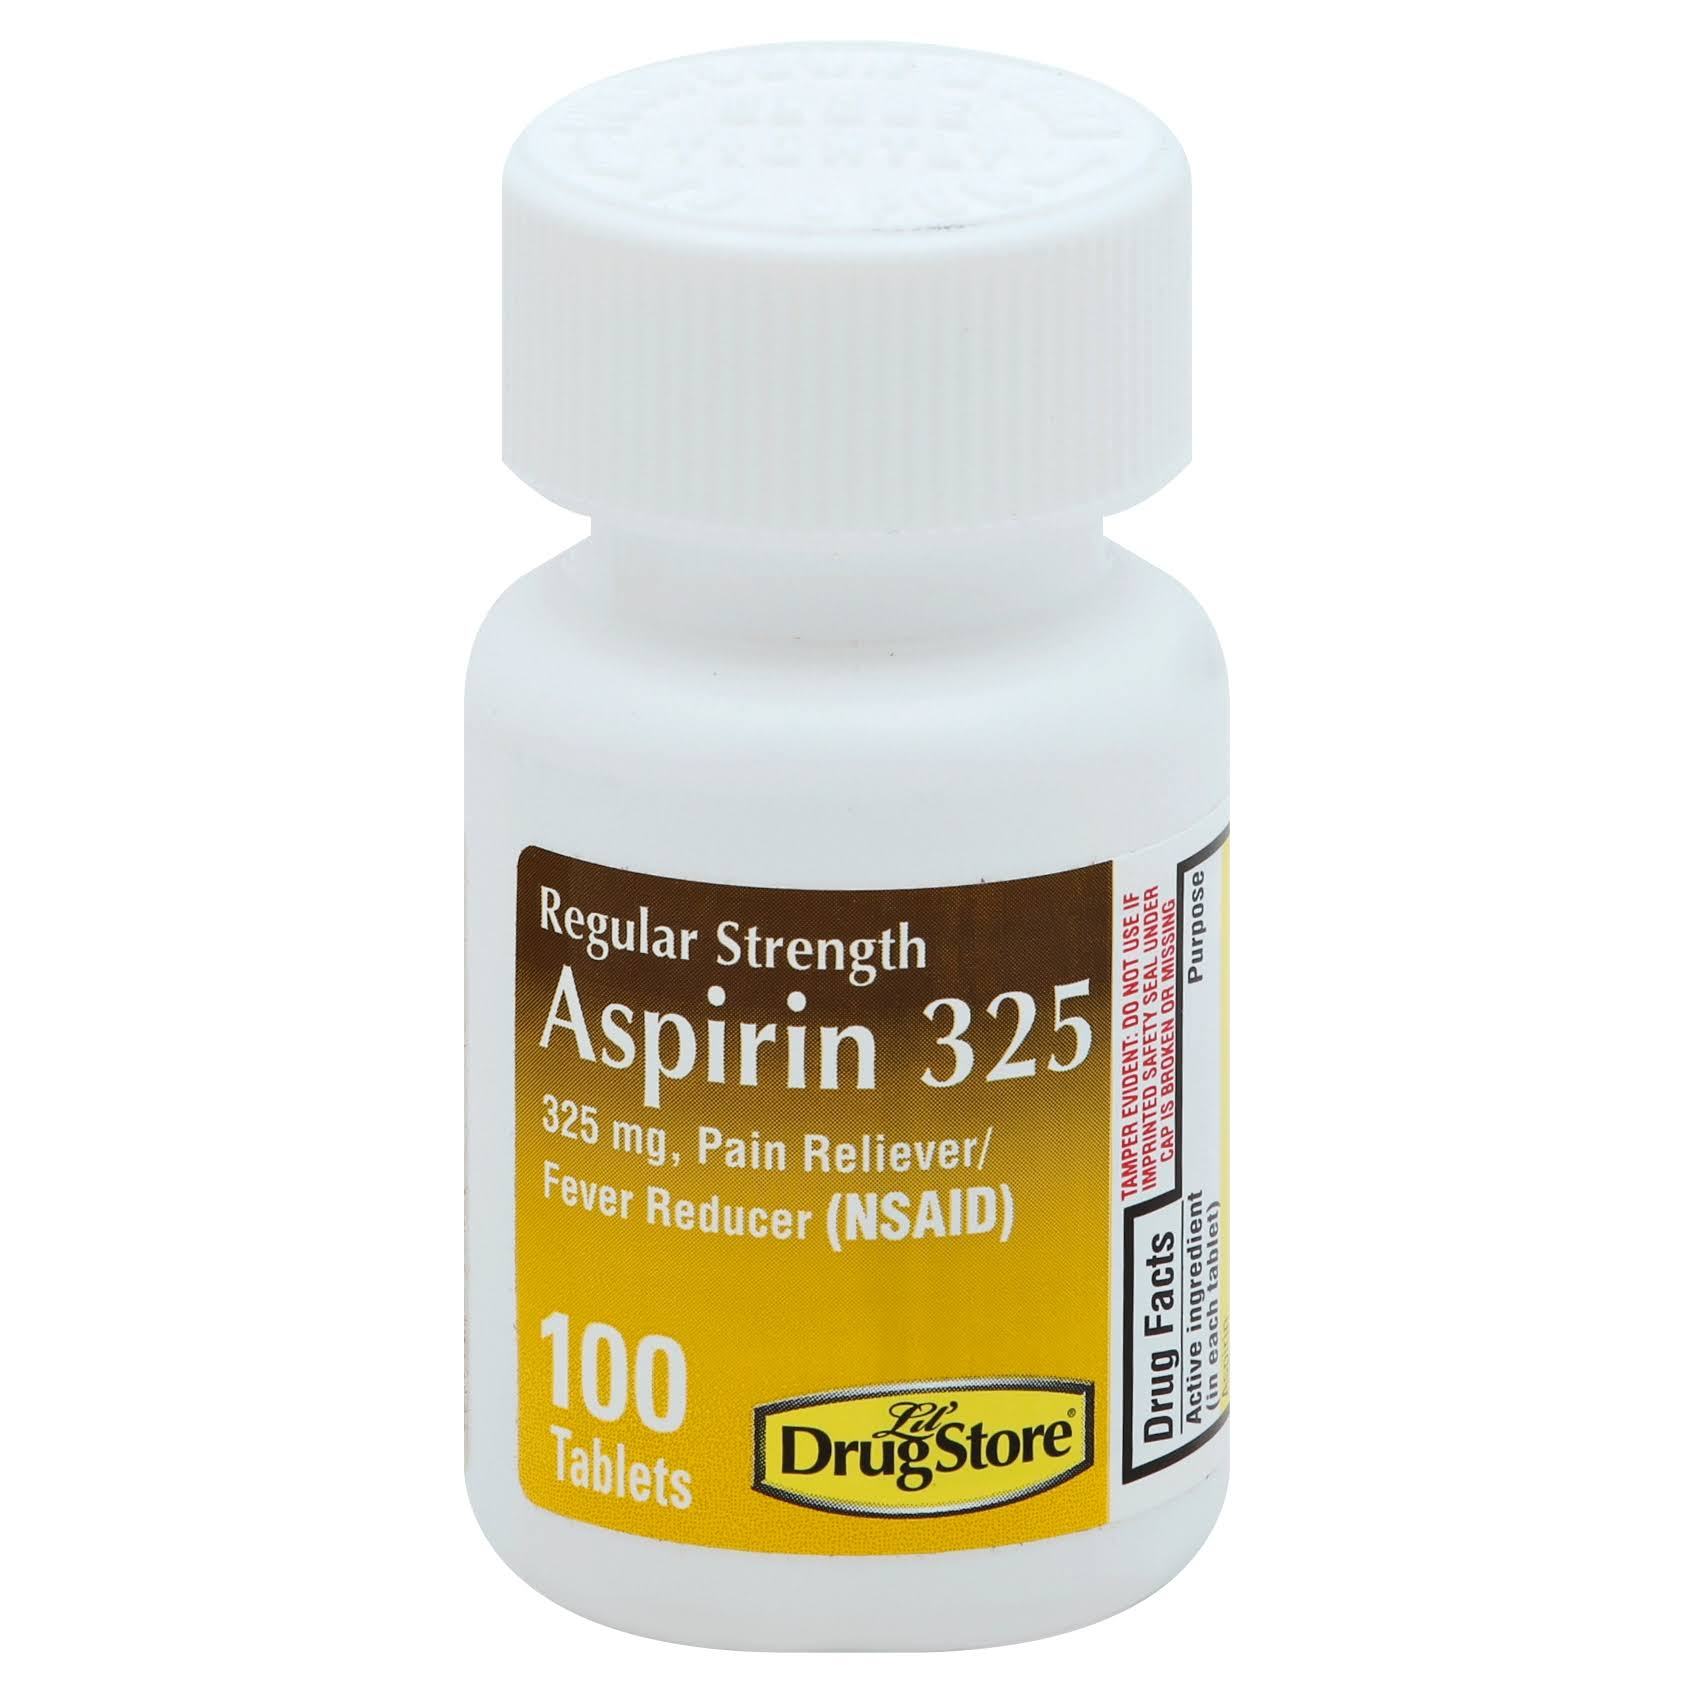 Lil Drug Store Aspirin 325, Regular Strength, 325 mg, Tablets - 100 tablets